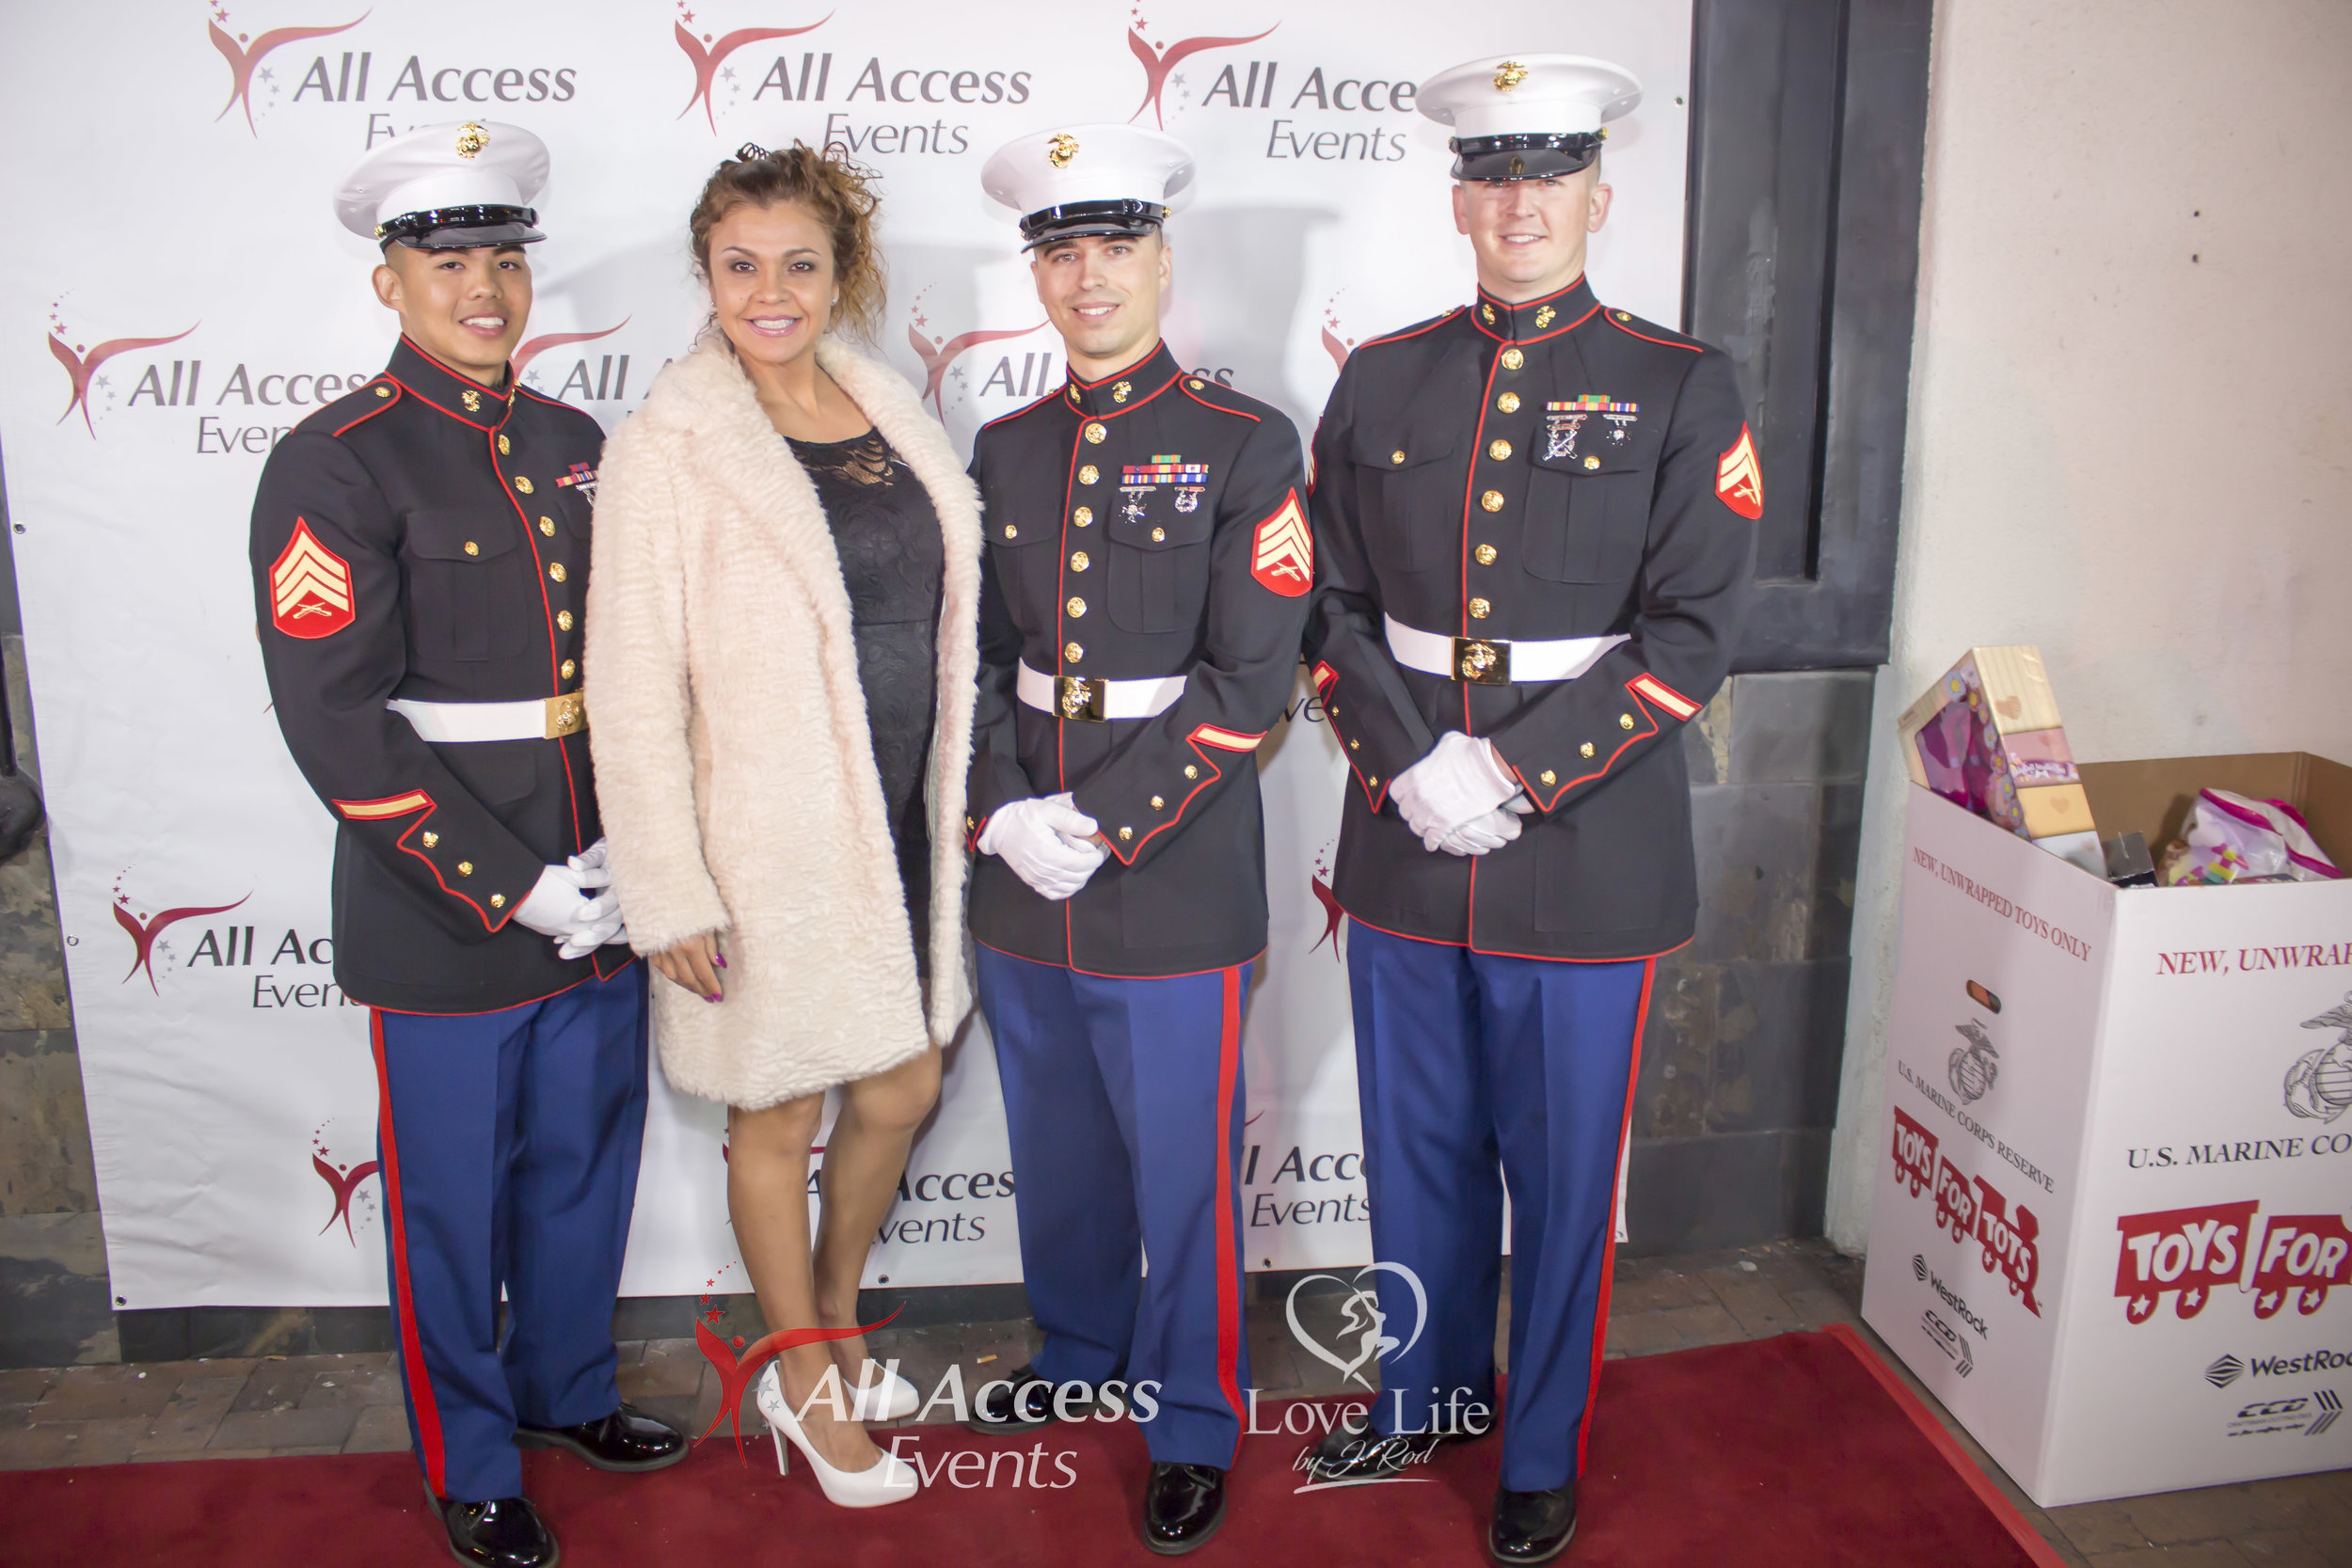 All Access Events Toy Drive - 12-13-17_225.jpg